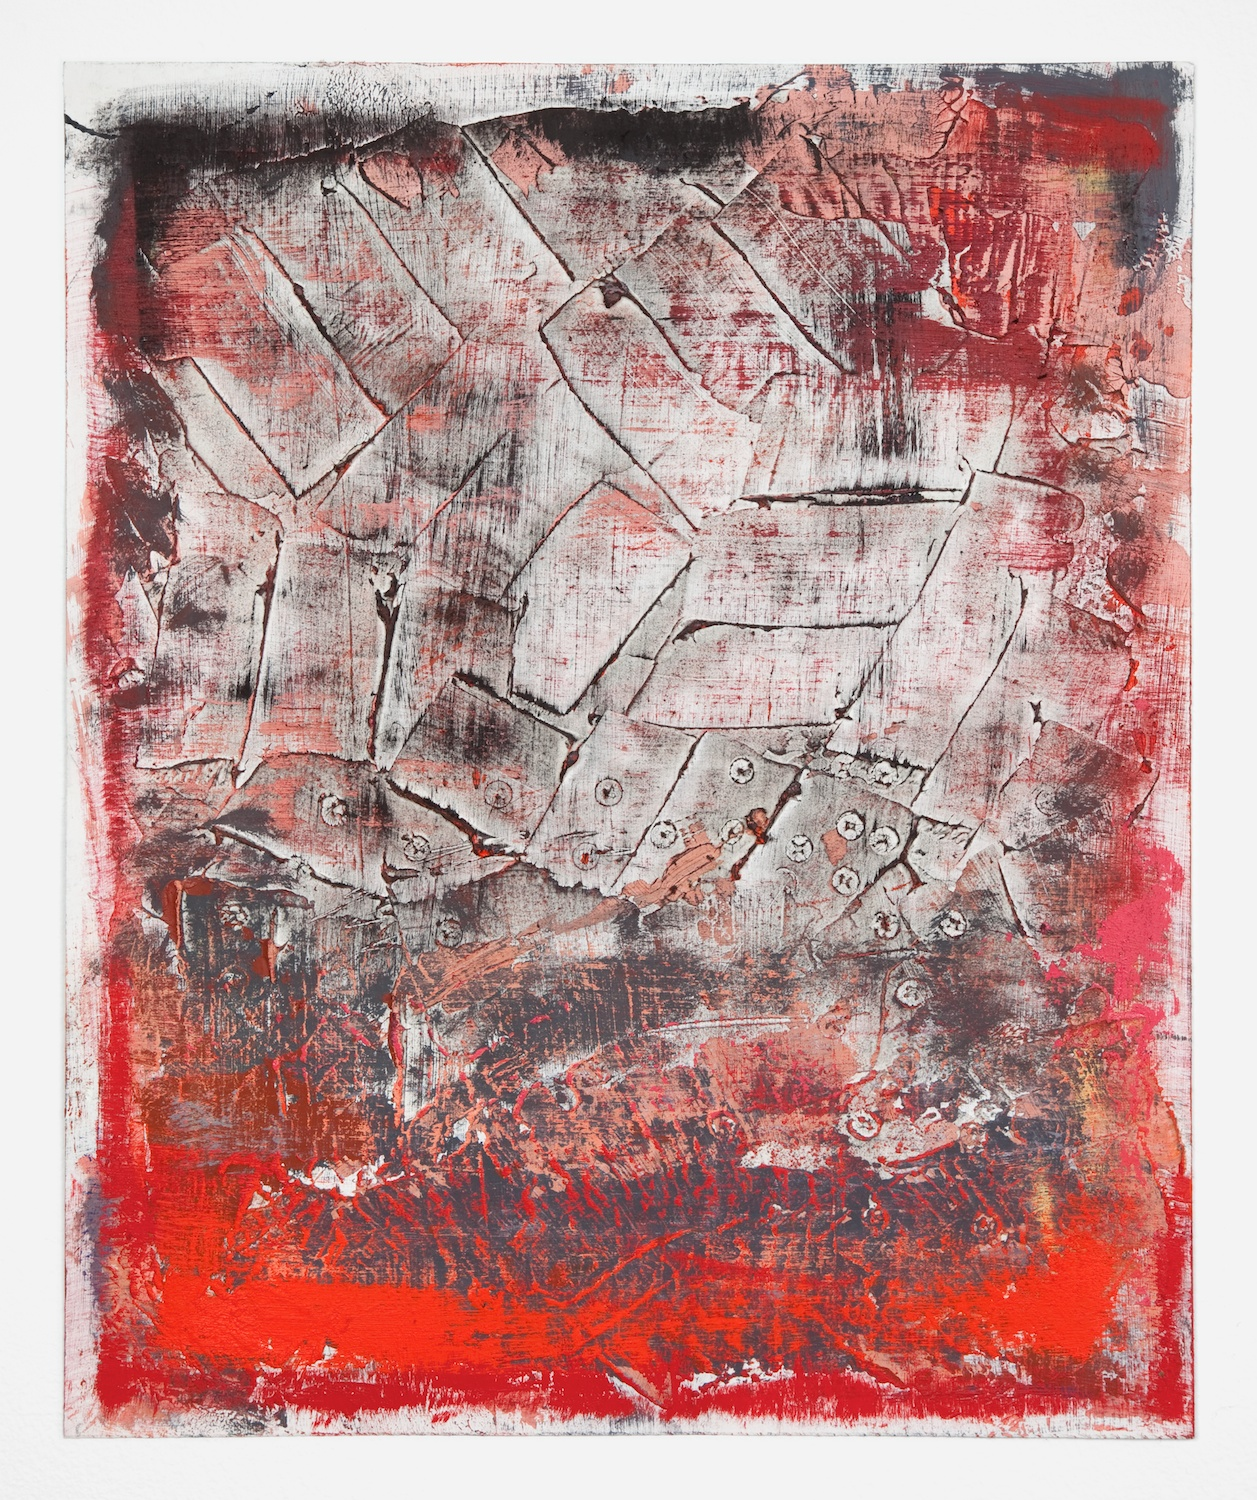 Alex Olson  Untitled  2012 Oil on gessoed paper 17h x 14w in AO082